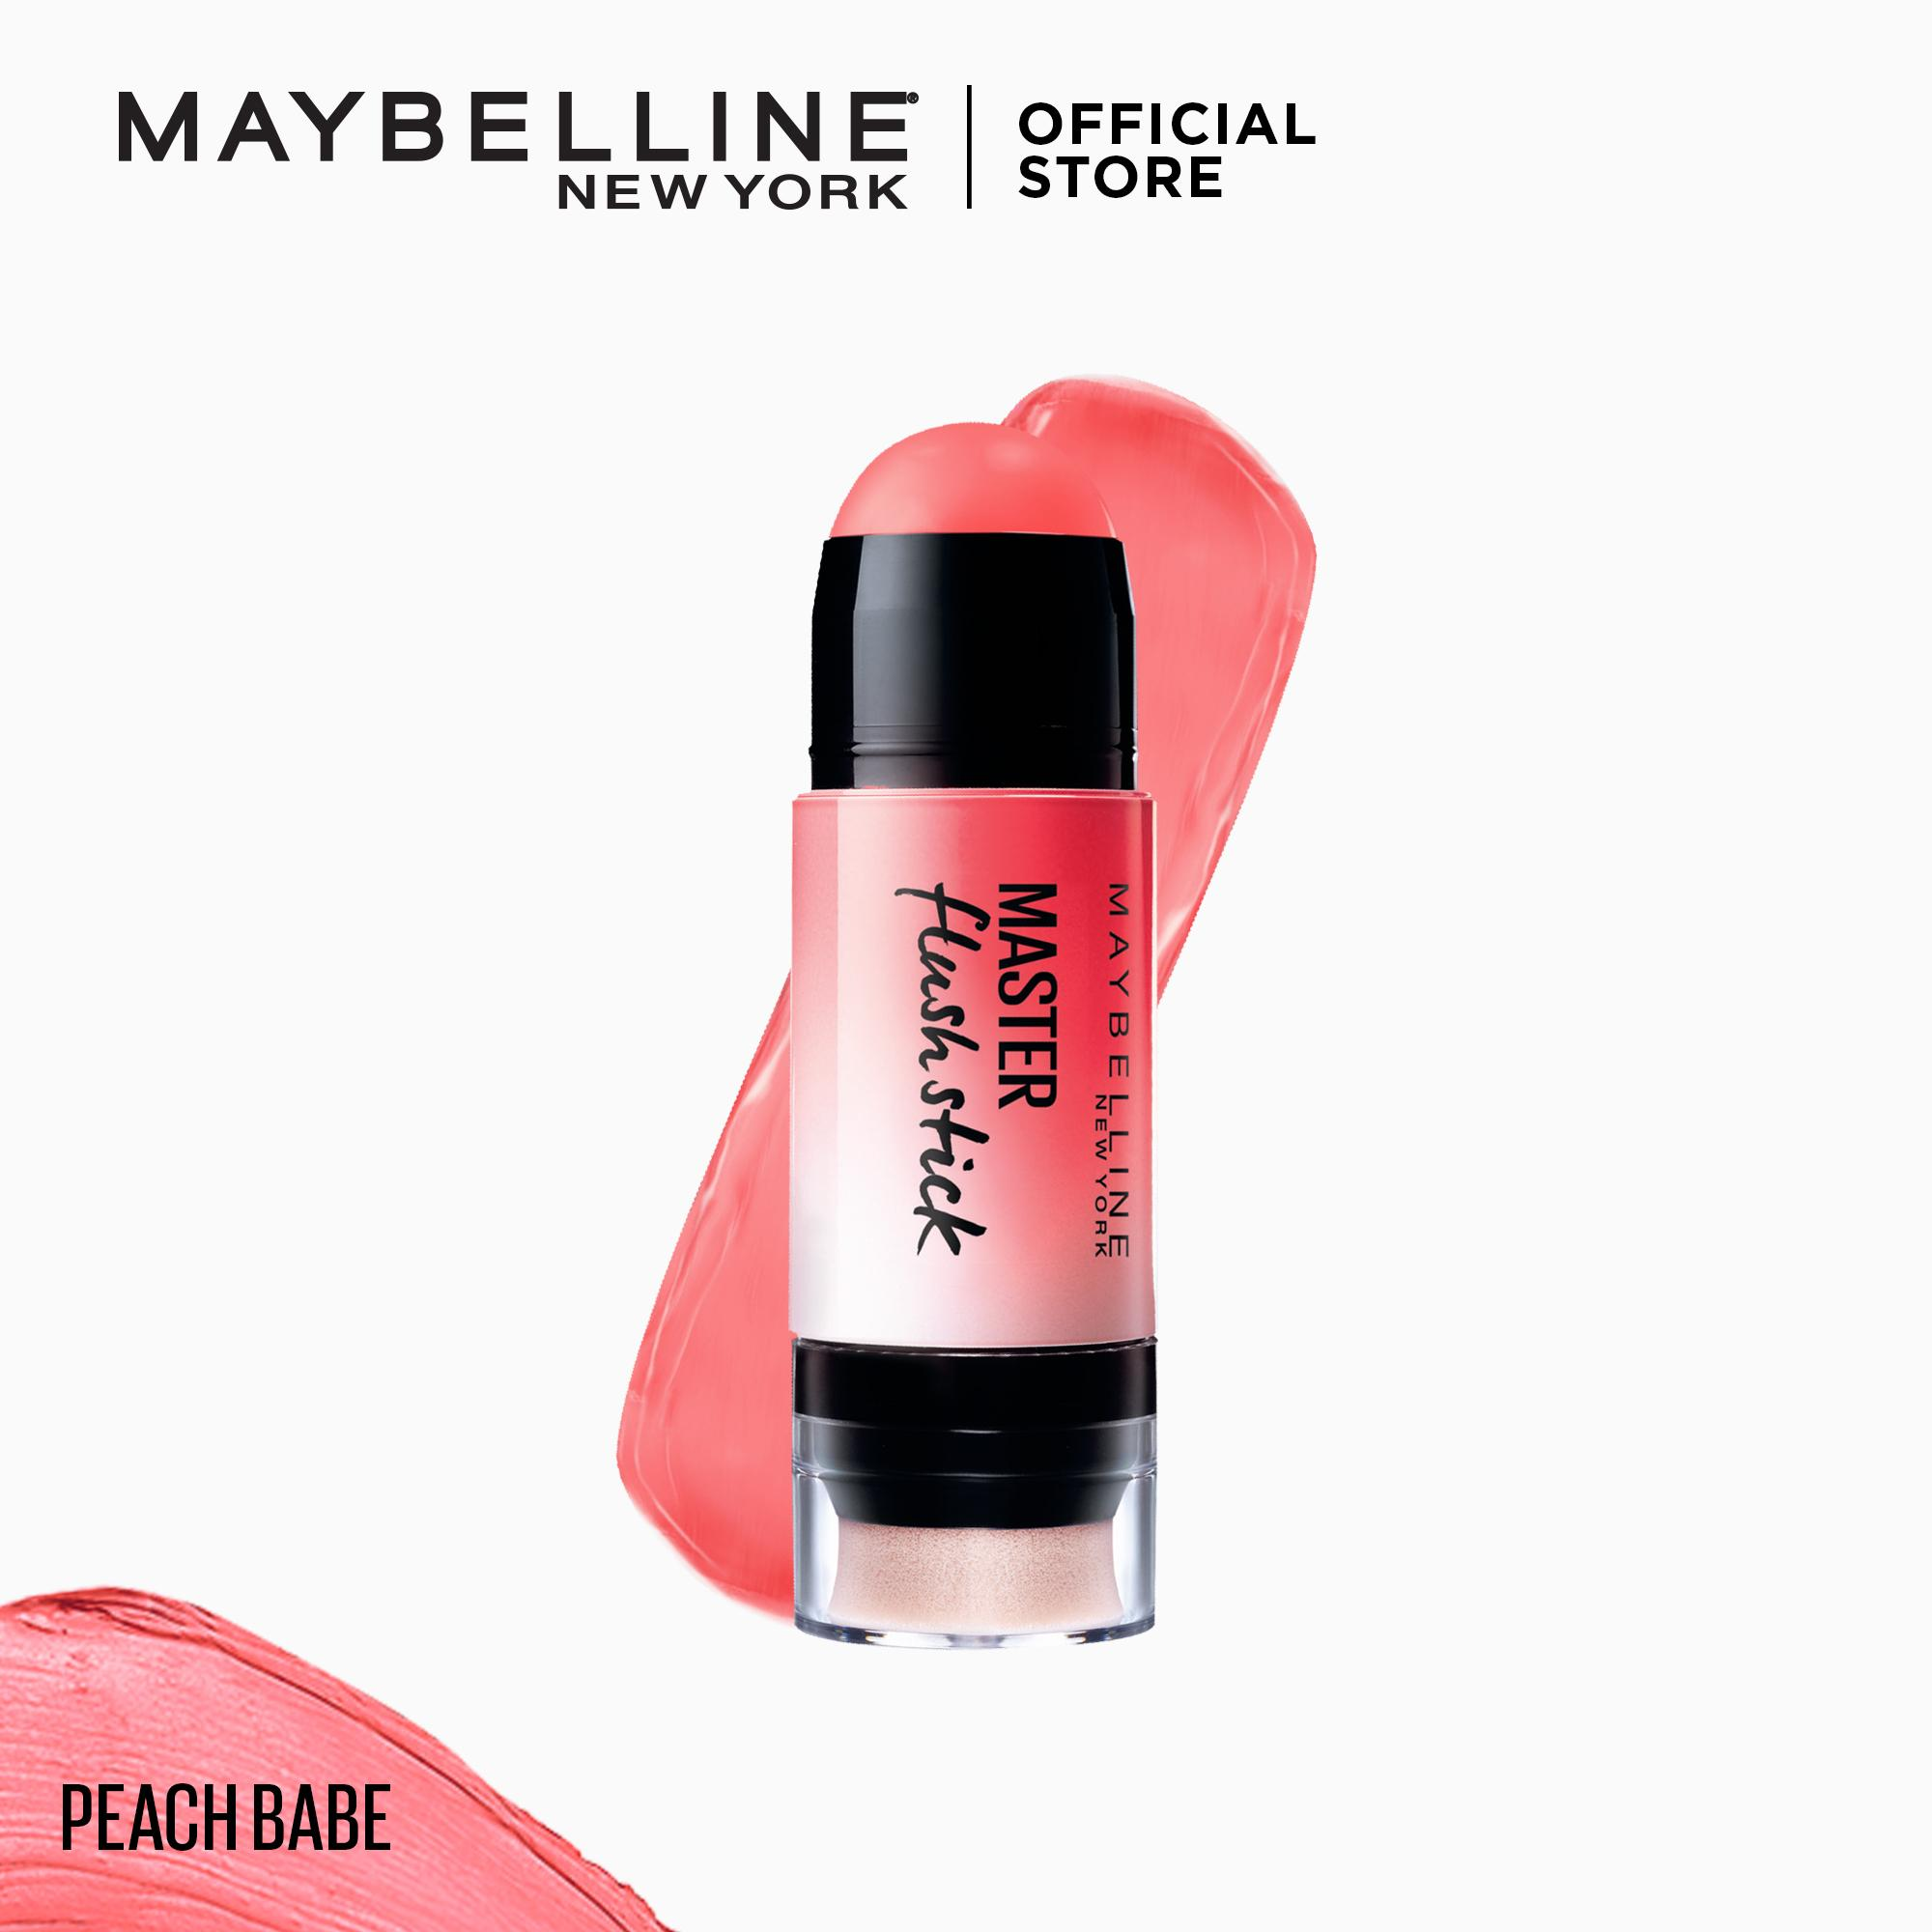 Master Flush Clay Blush Stick - Peach Babe by Maybelline Philippines